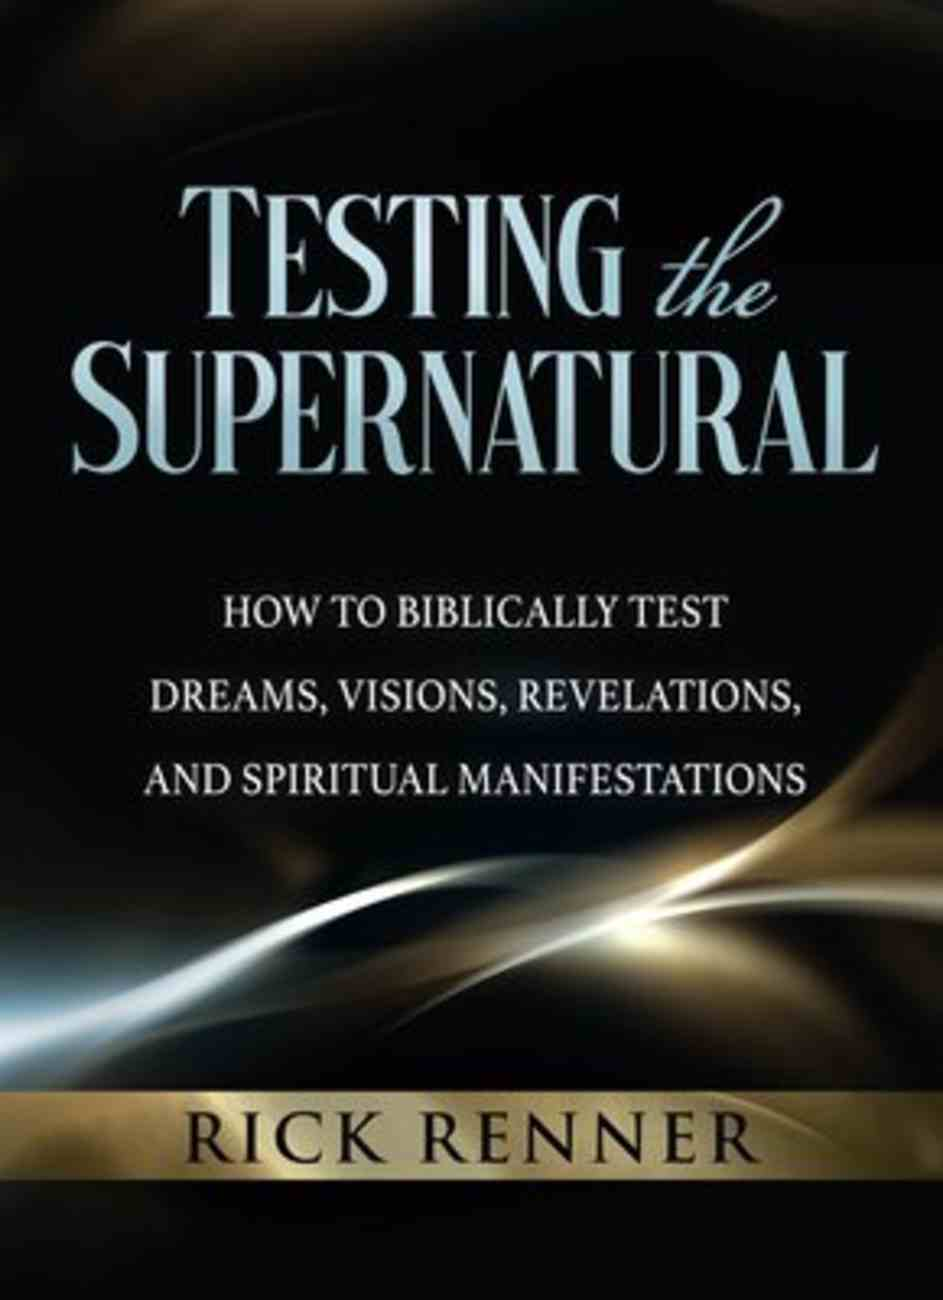 Testing the Supernatural: How to Biblically Test Dreams, Visions, Revelations, and Spiritual Manifestations Paperback